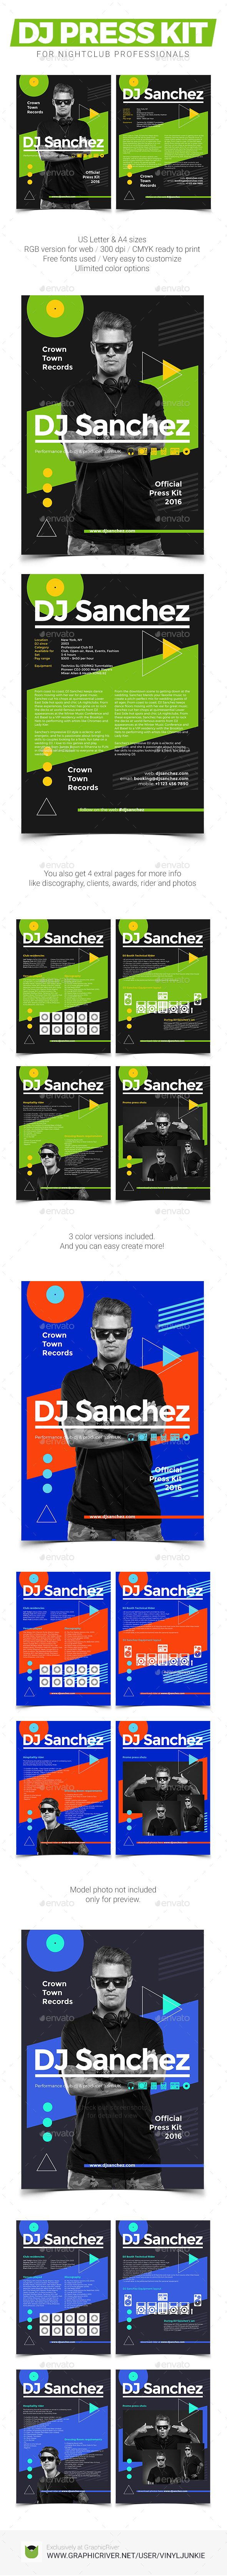 prodj dj press kit rider resume psd template press kit prodj dj press kit rider resume psd template djpresskit psd